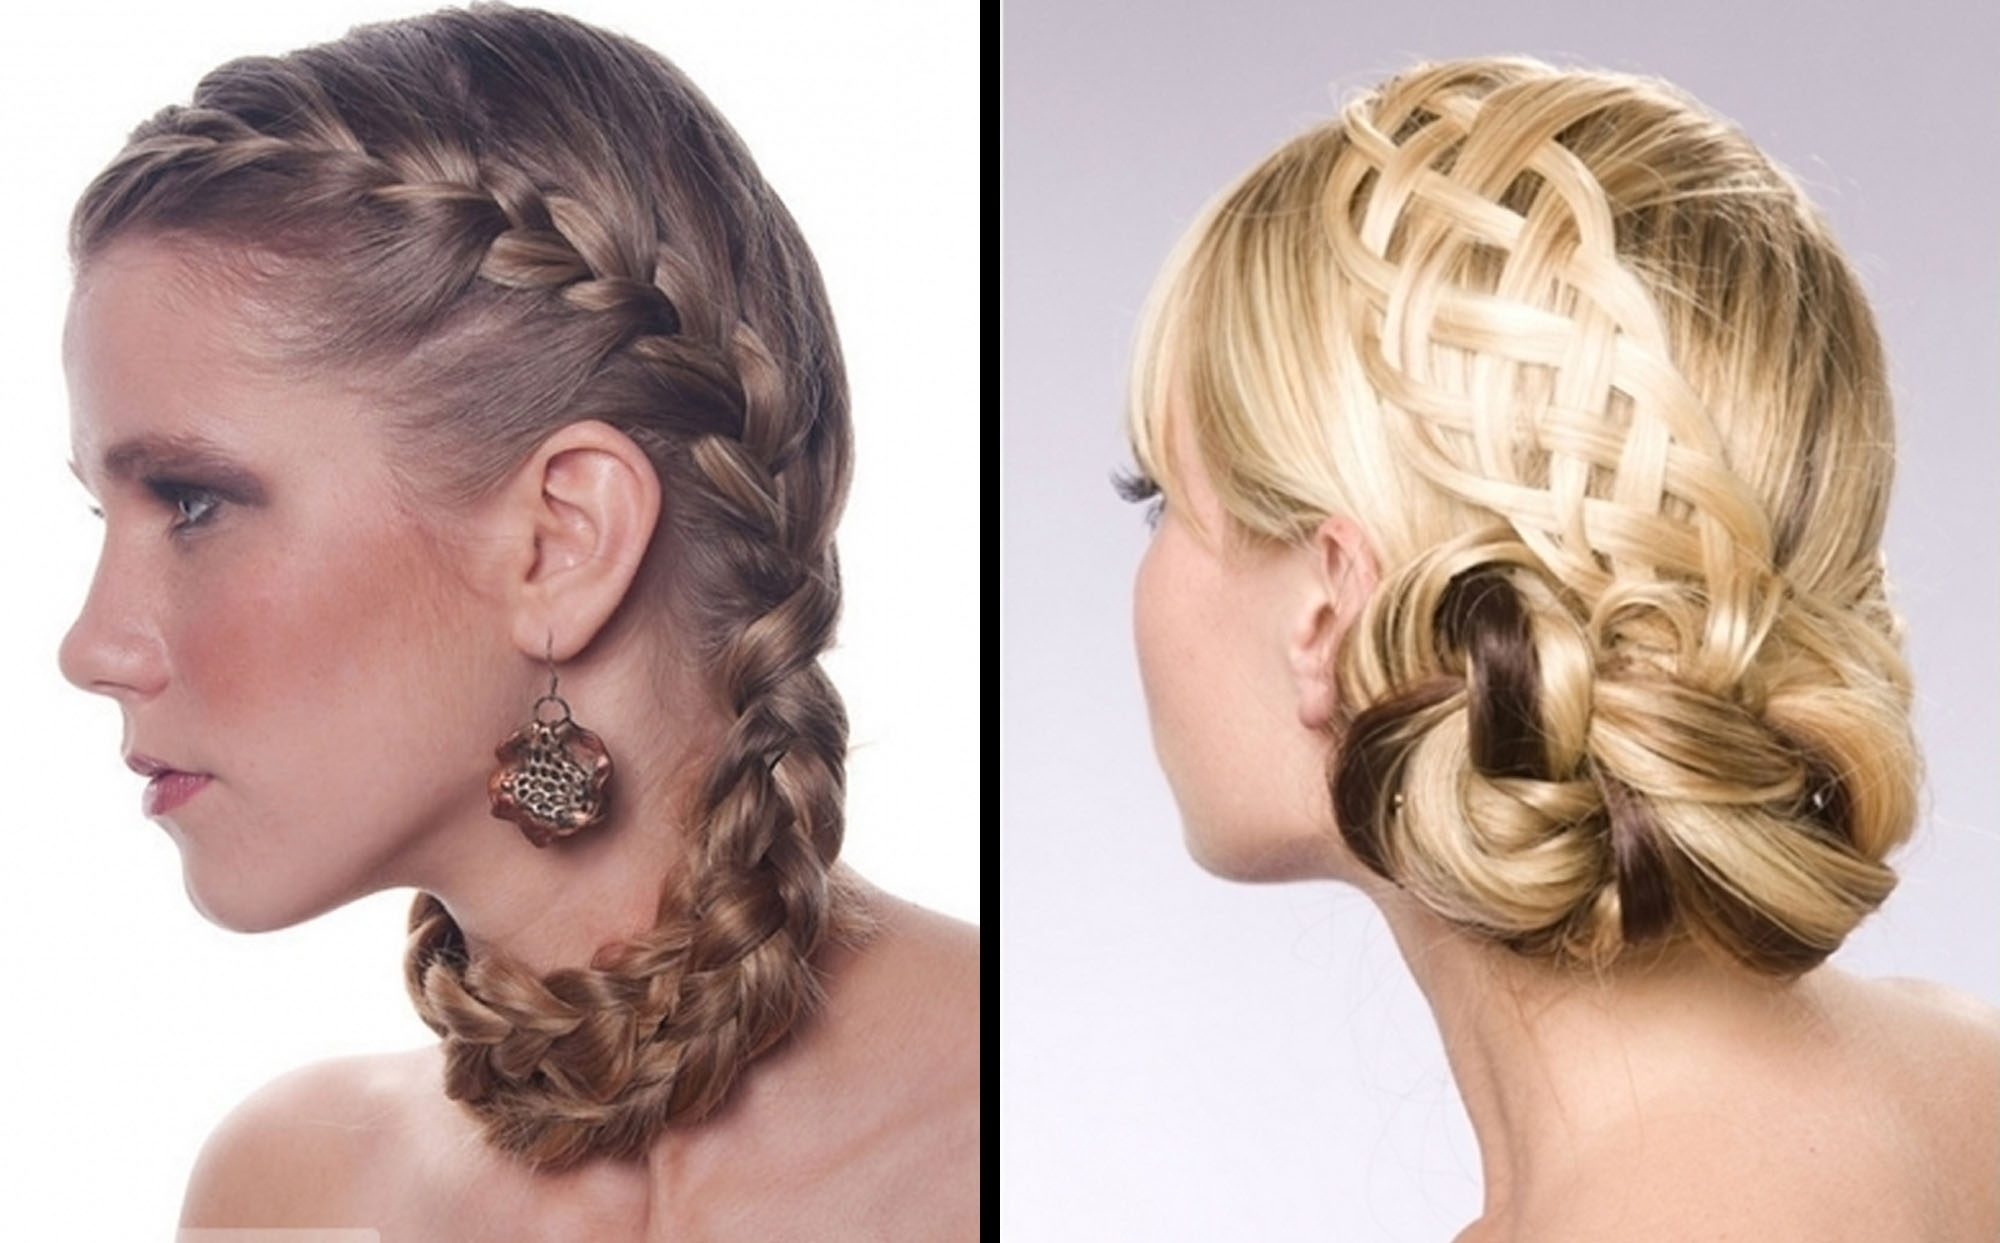 Hair Braided Updo Hairstyles Salon Formal | Medium Hair Styles Ideas Inside Braids Updo Hairstyles (View 8 of 15)